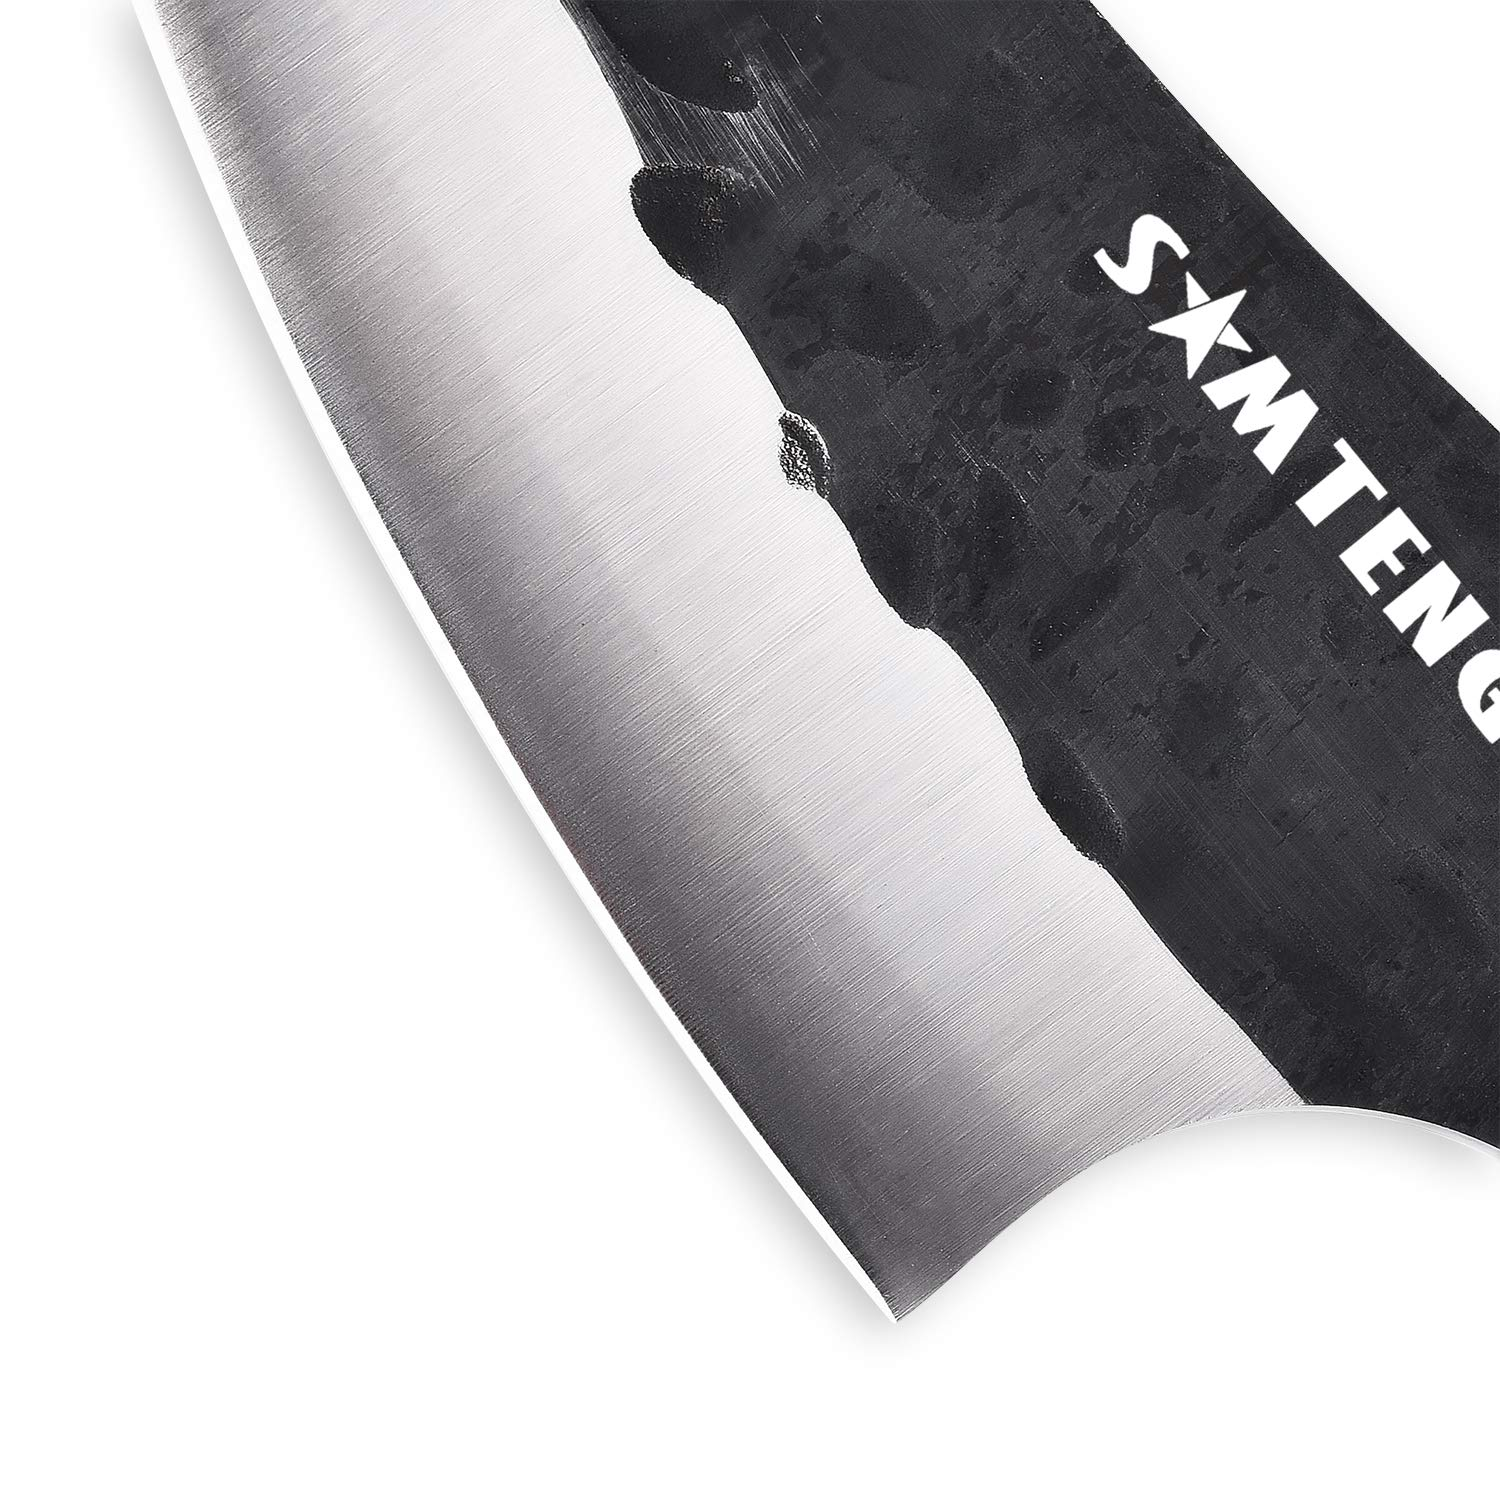 SMTENG Boning Knife 5.5 inch Handmade Forged Hammered kitchen Knife Full tang Sharp Blade Chef Knives Outdoor BBQ Meat Cleaver by SMTENG (Image #3)